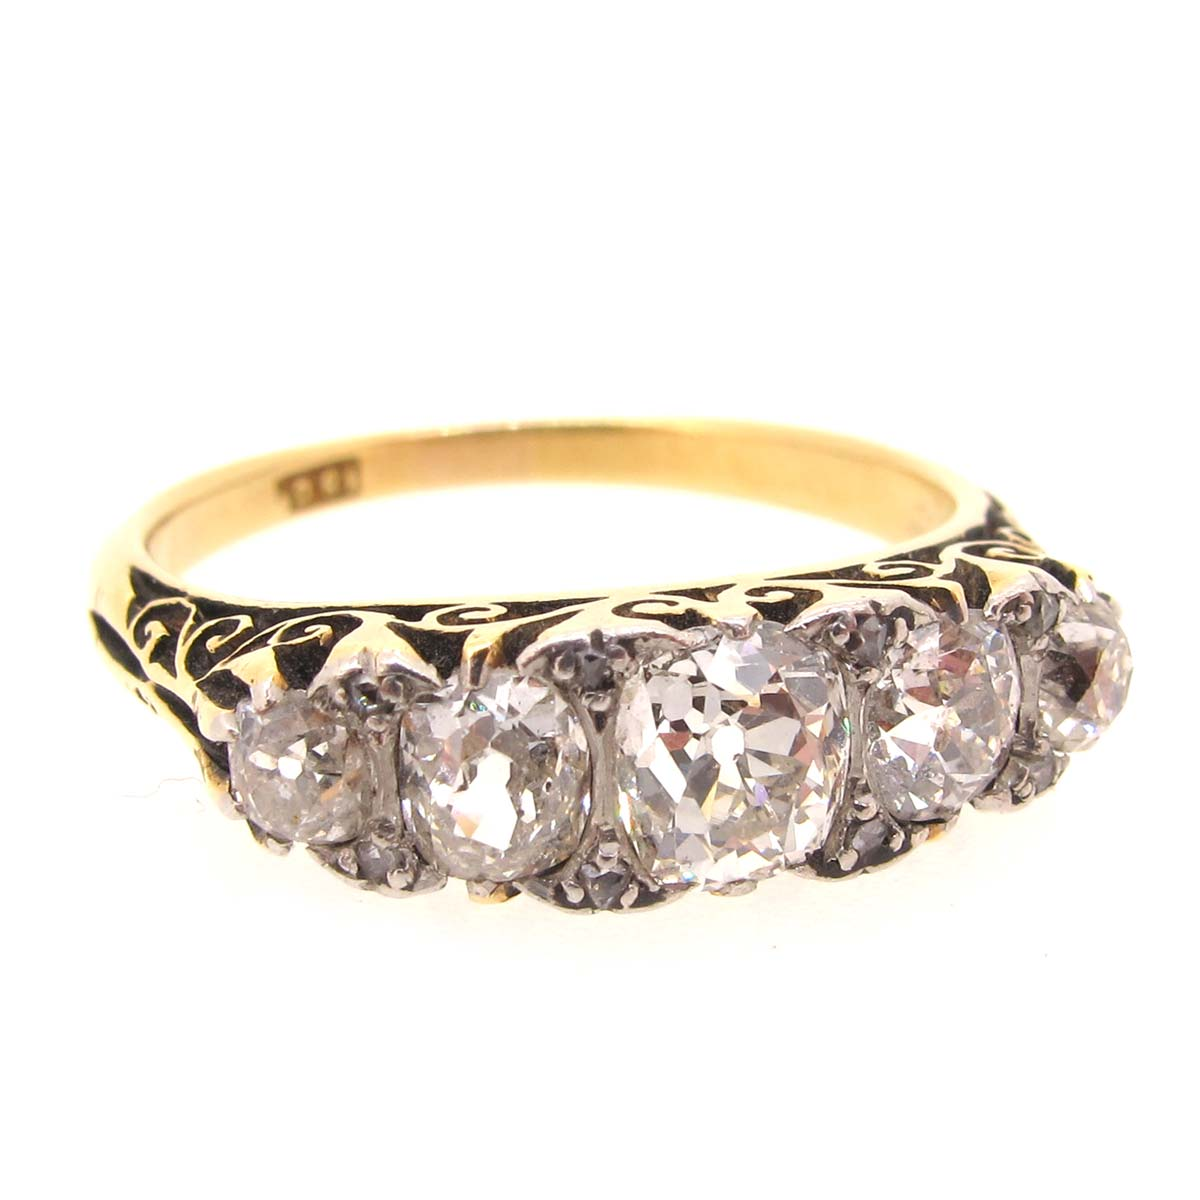 Victorian gold & diamond 5 stone ring